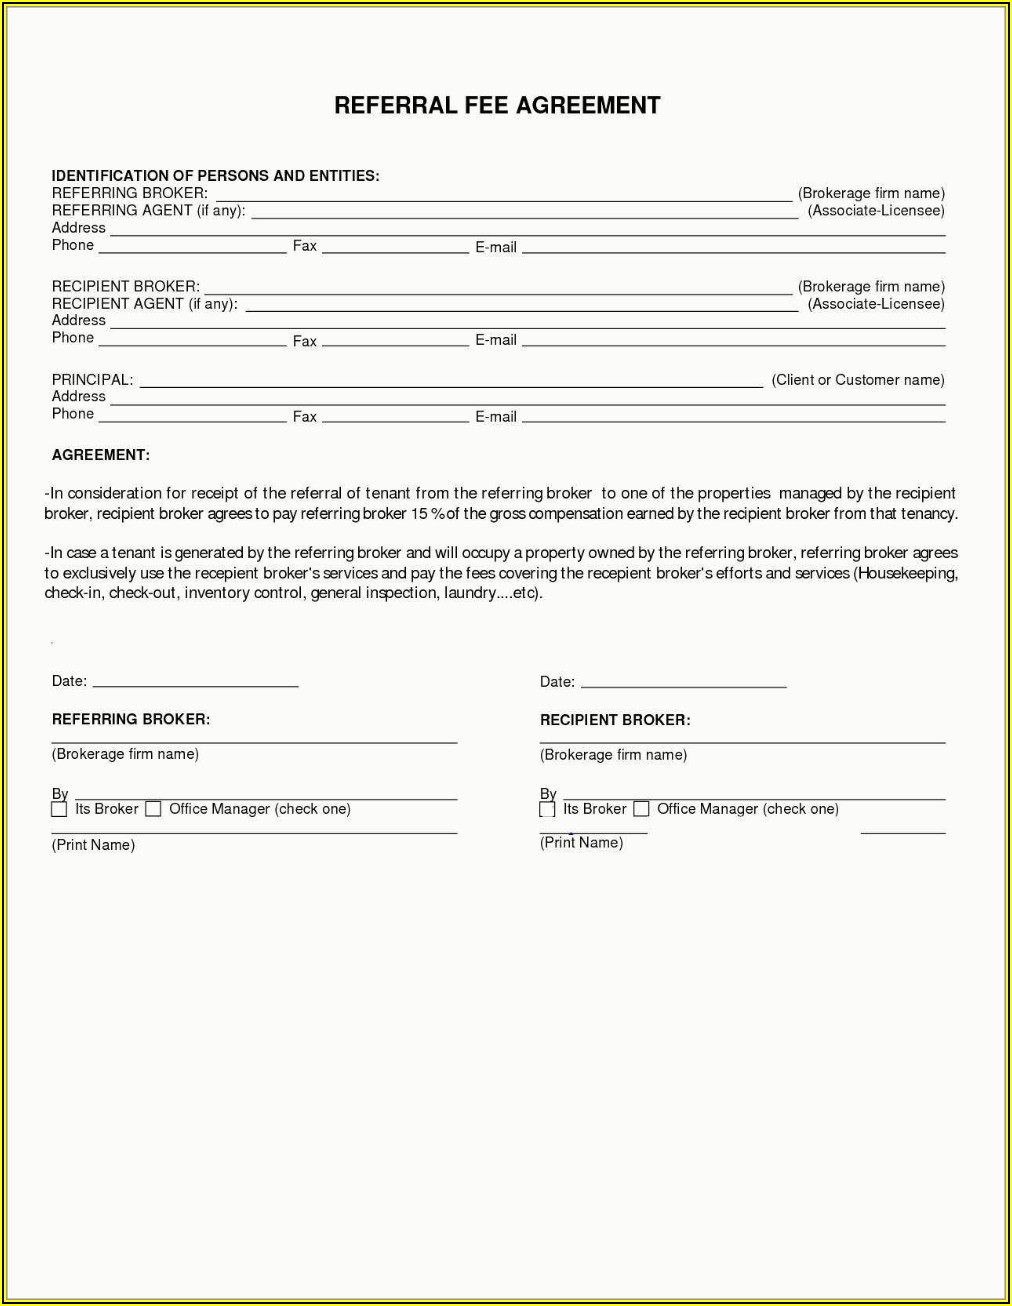 Finder's Fee Agreement Template Free